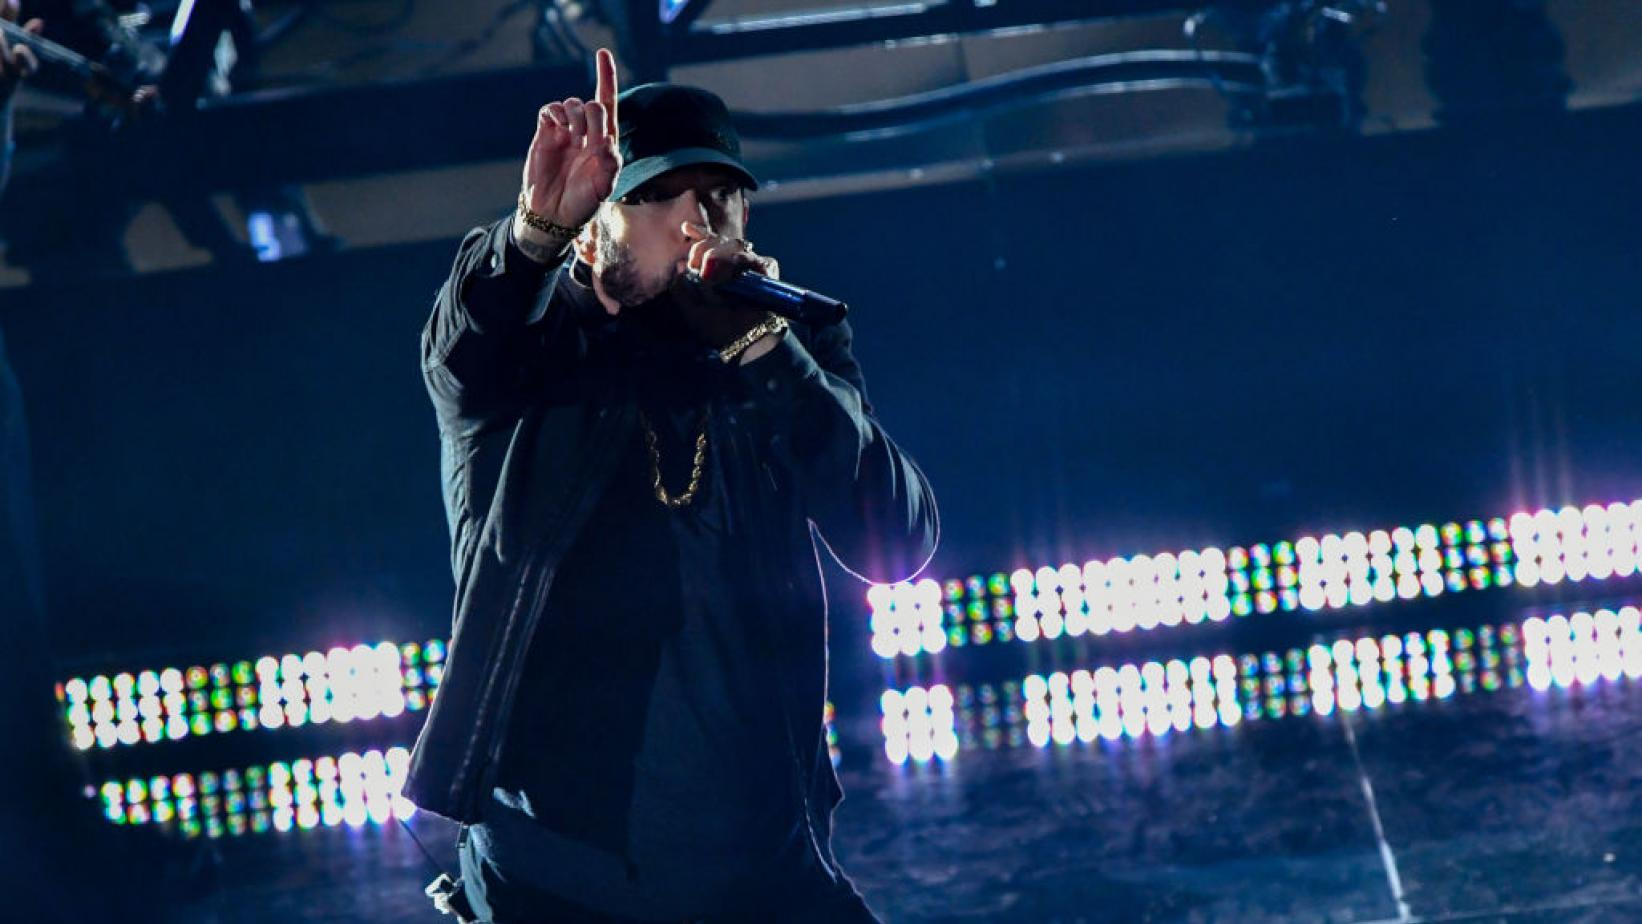 Eminem Gives Surprise Performance of 'Lose Yourself' at 92nd Oscars